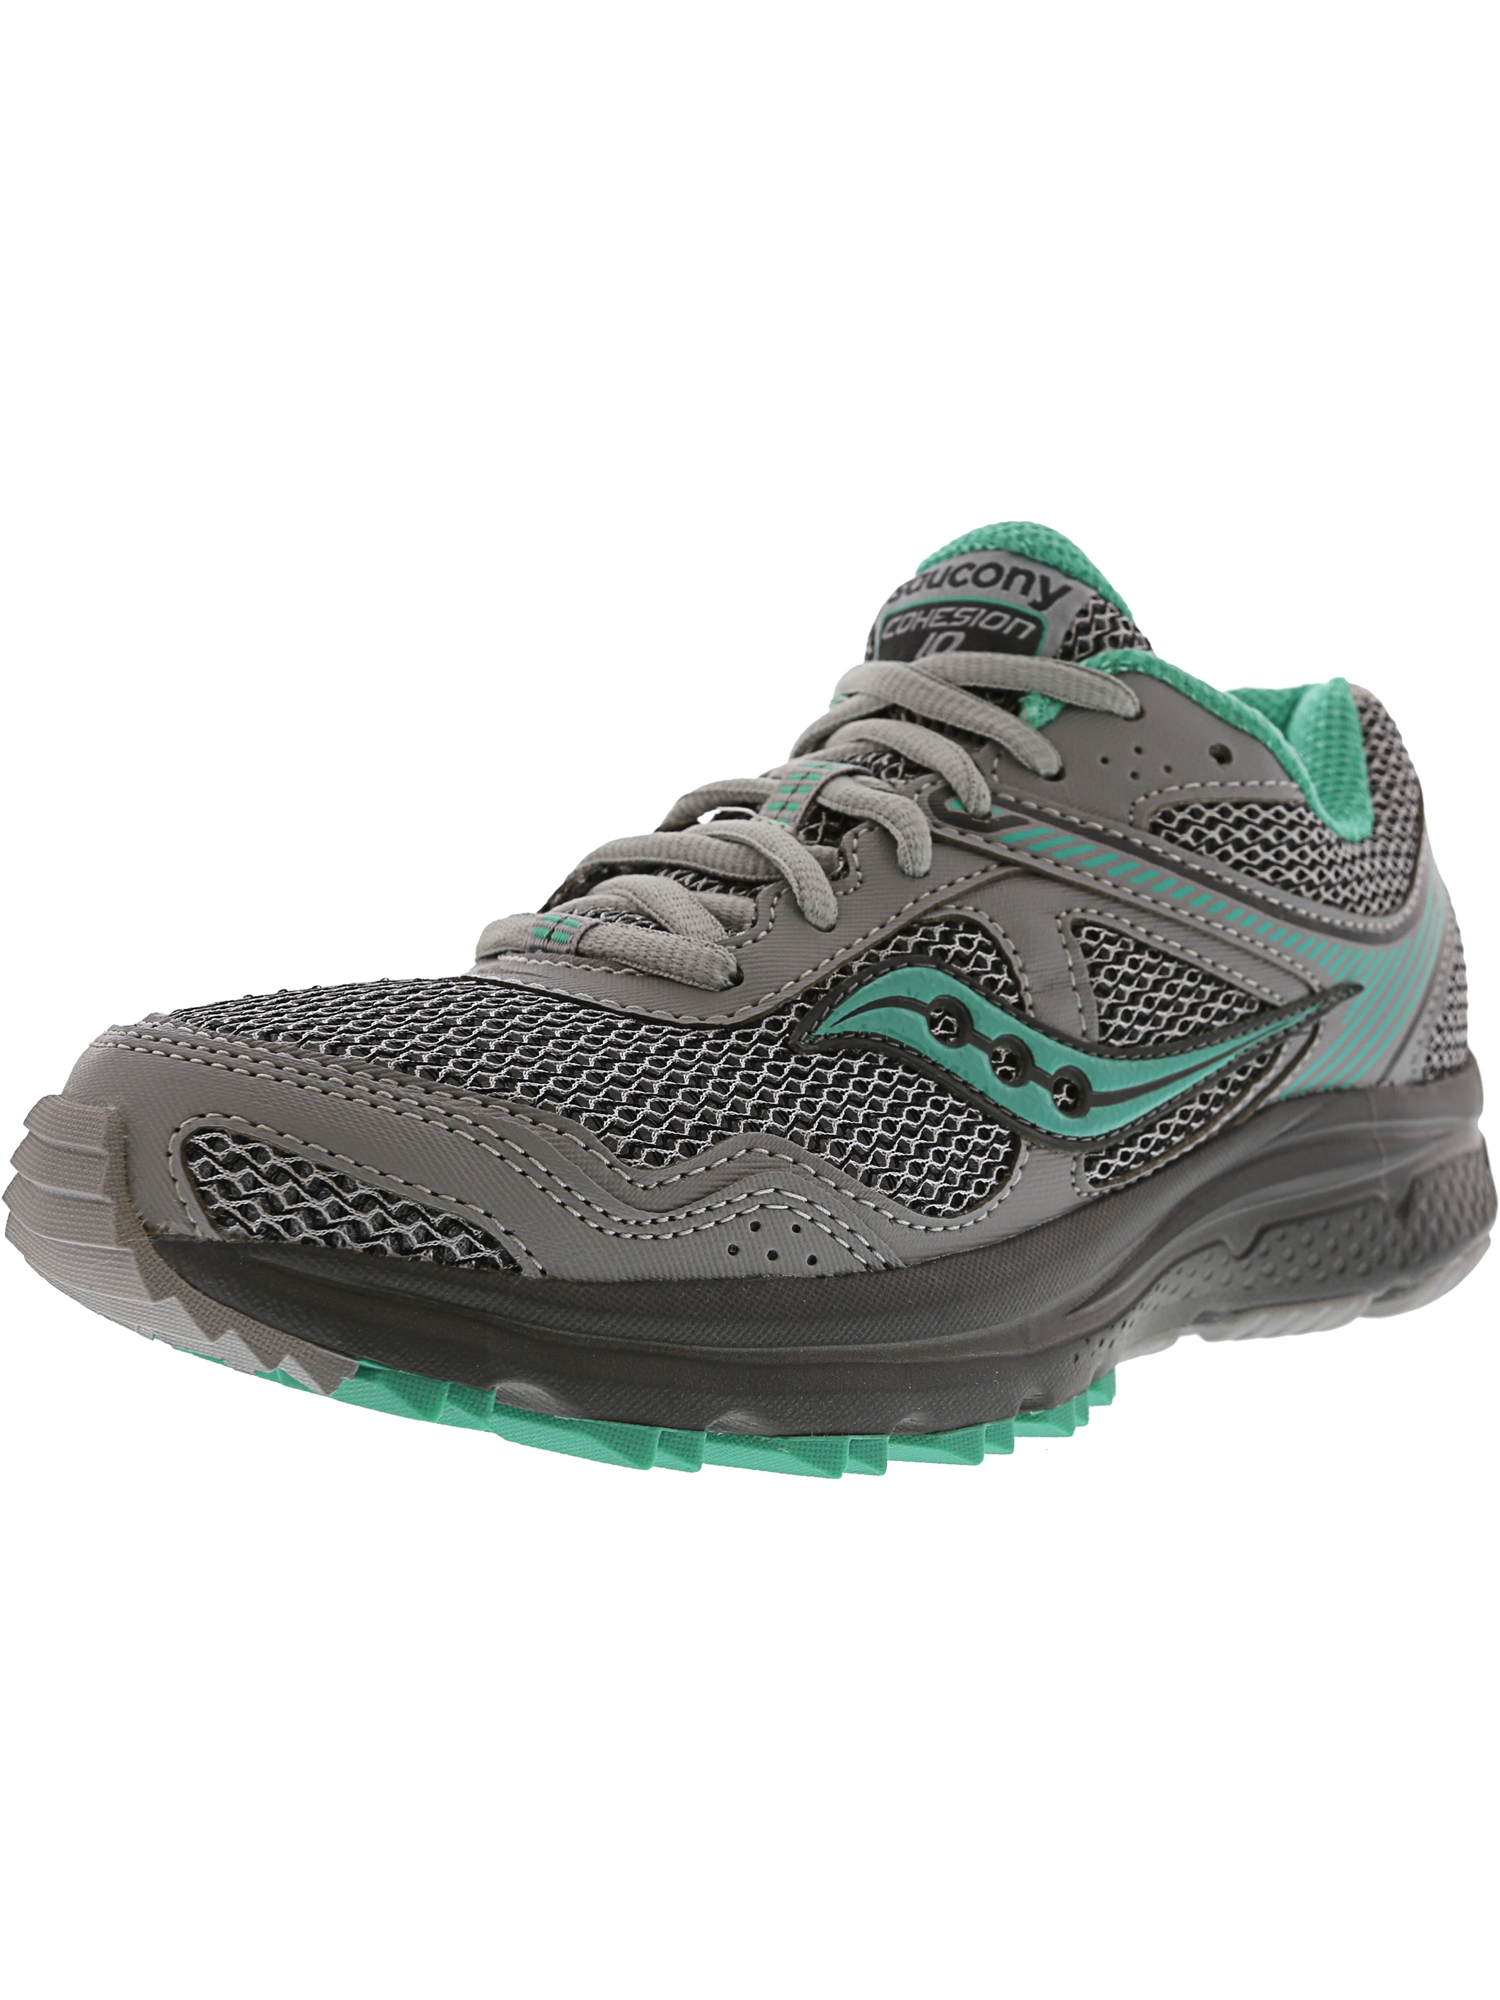 Saucony Women's Grid Cohesion Tr 10 Grey / Mint Ankle-High Trail Runner - 12M